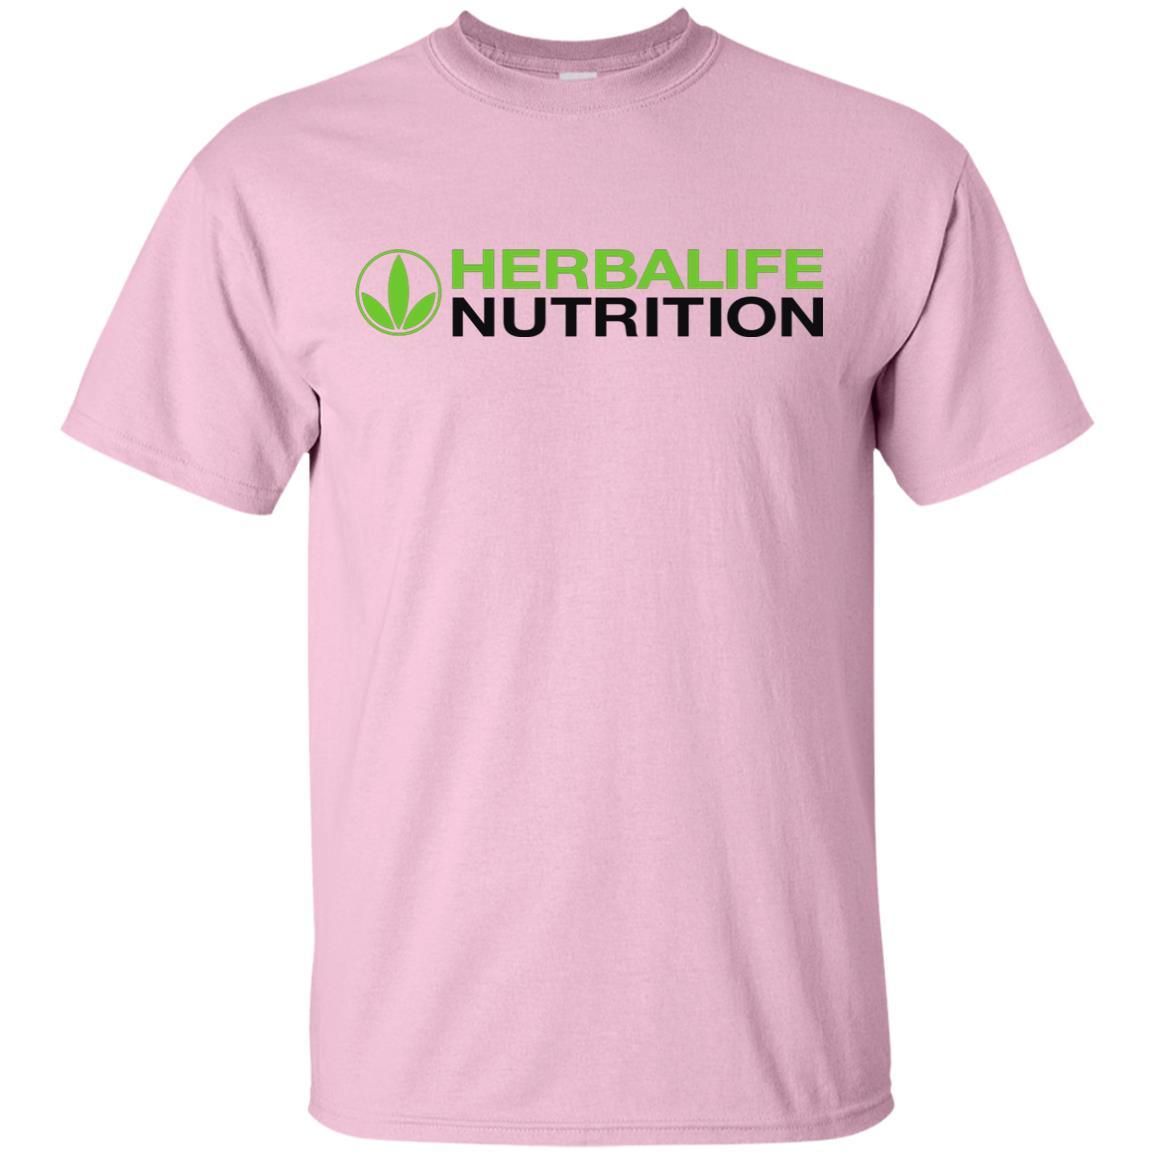 HERBALIFE NUTRITION T-Shirt Style / Color / Size